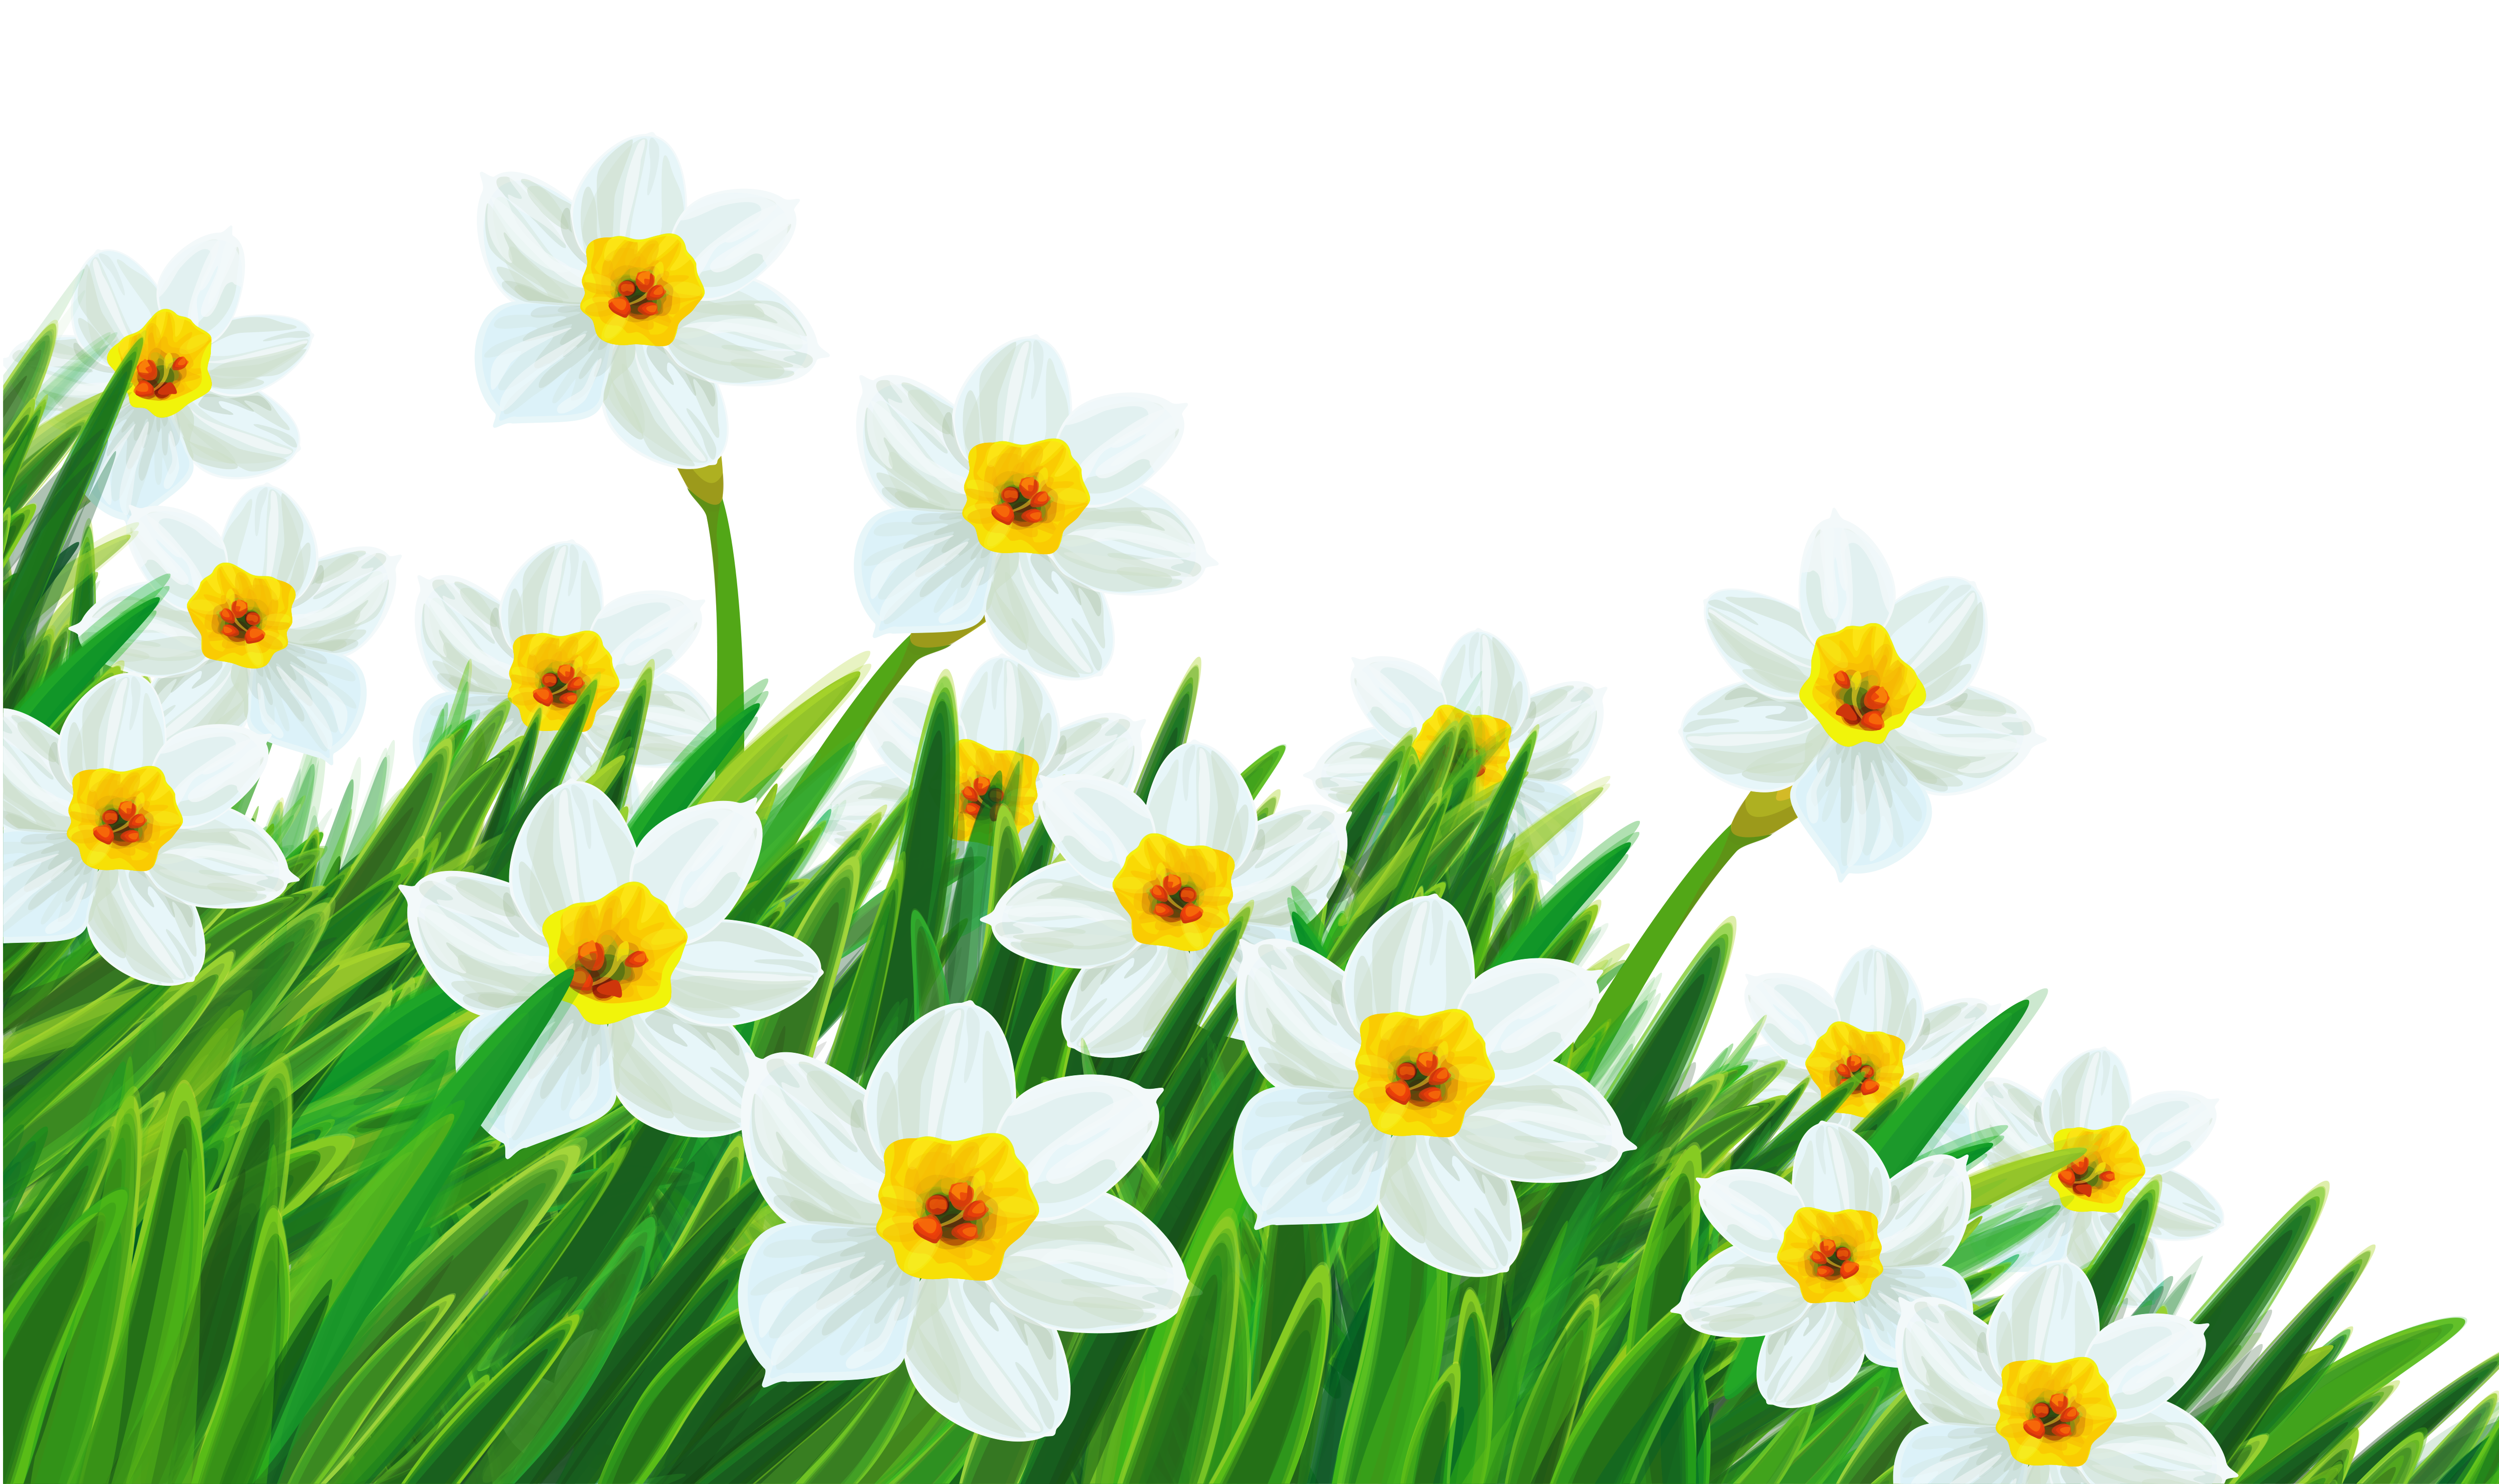 Daffodil vector background. With daffodils clipart tavasz